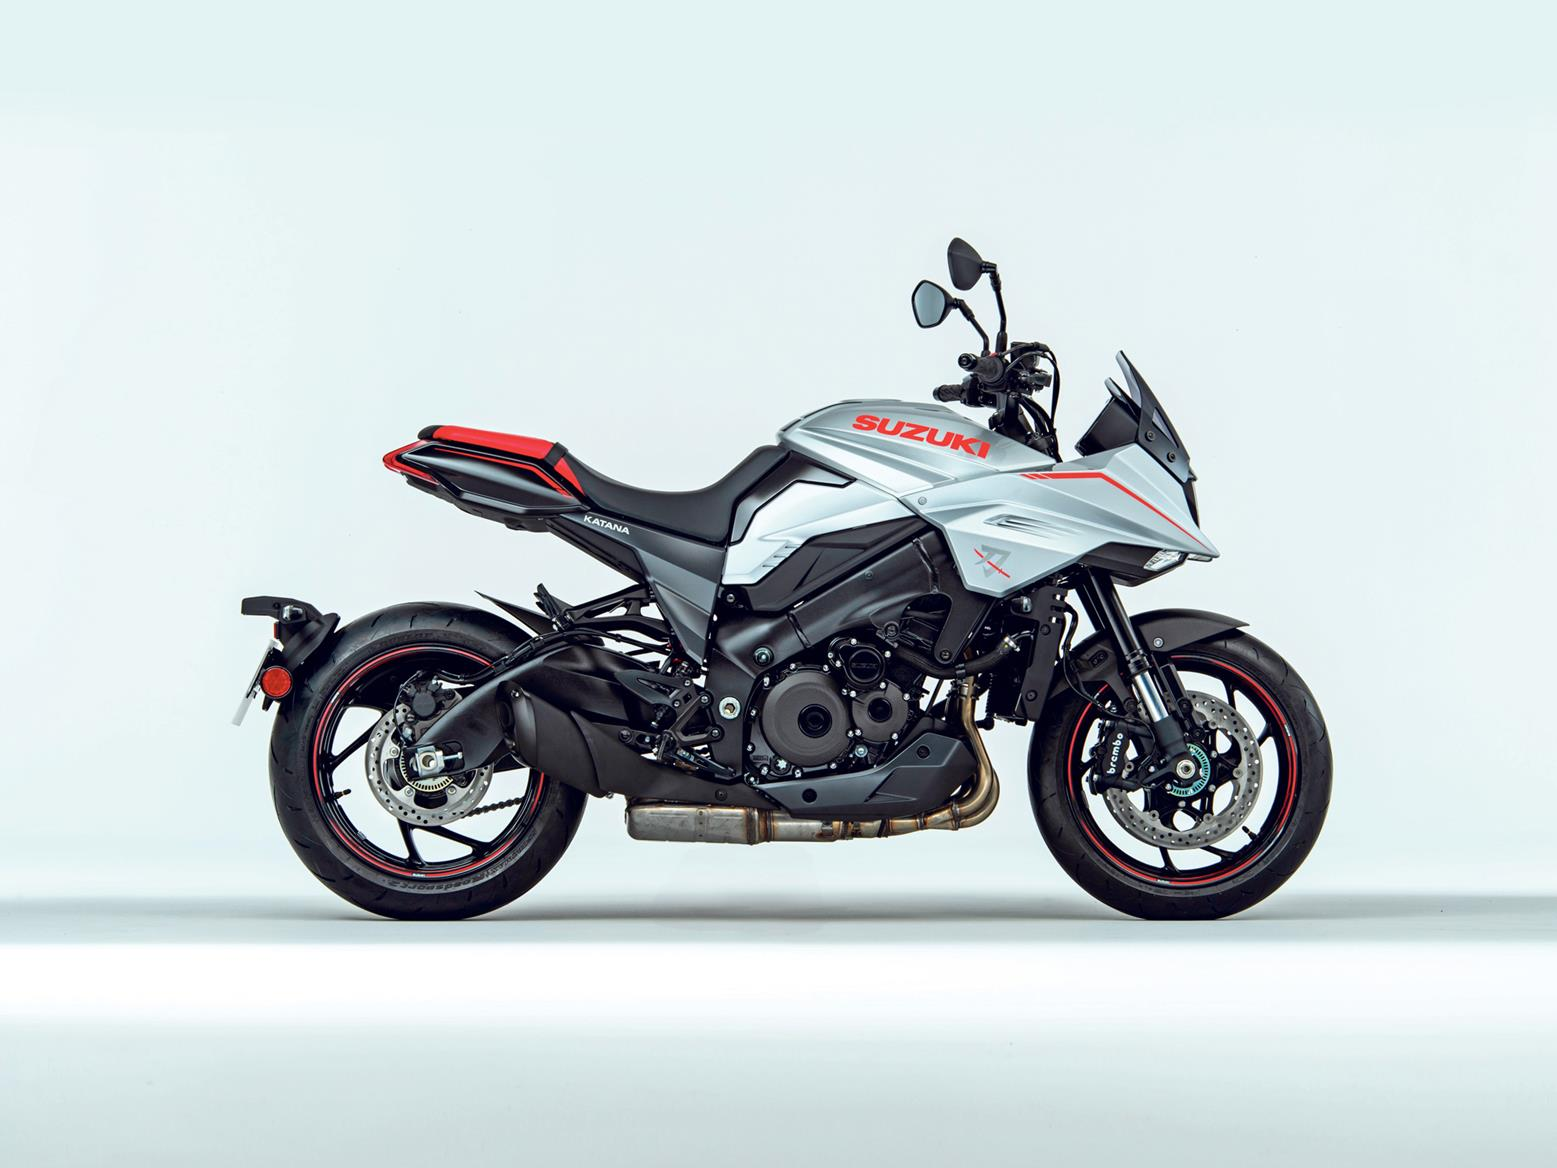 Suzuki Katana 2019 side profile